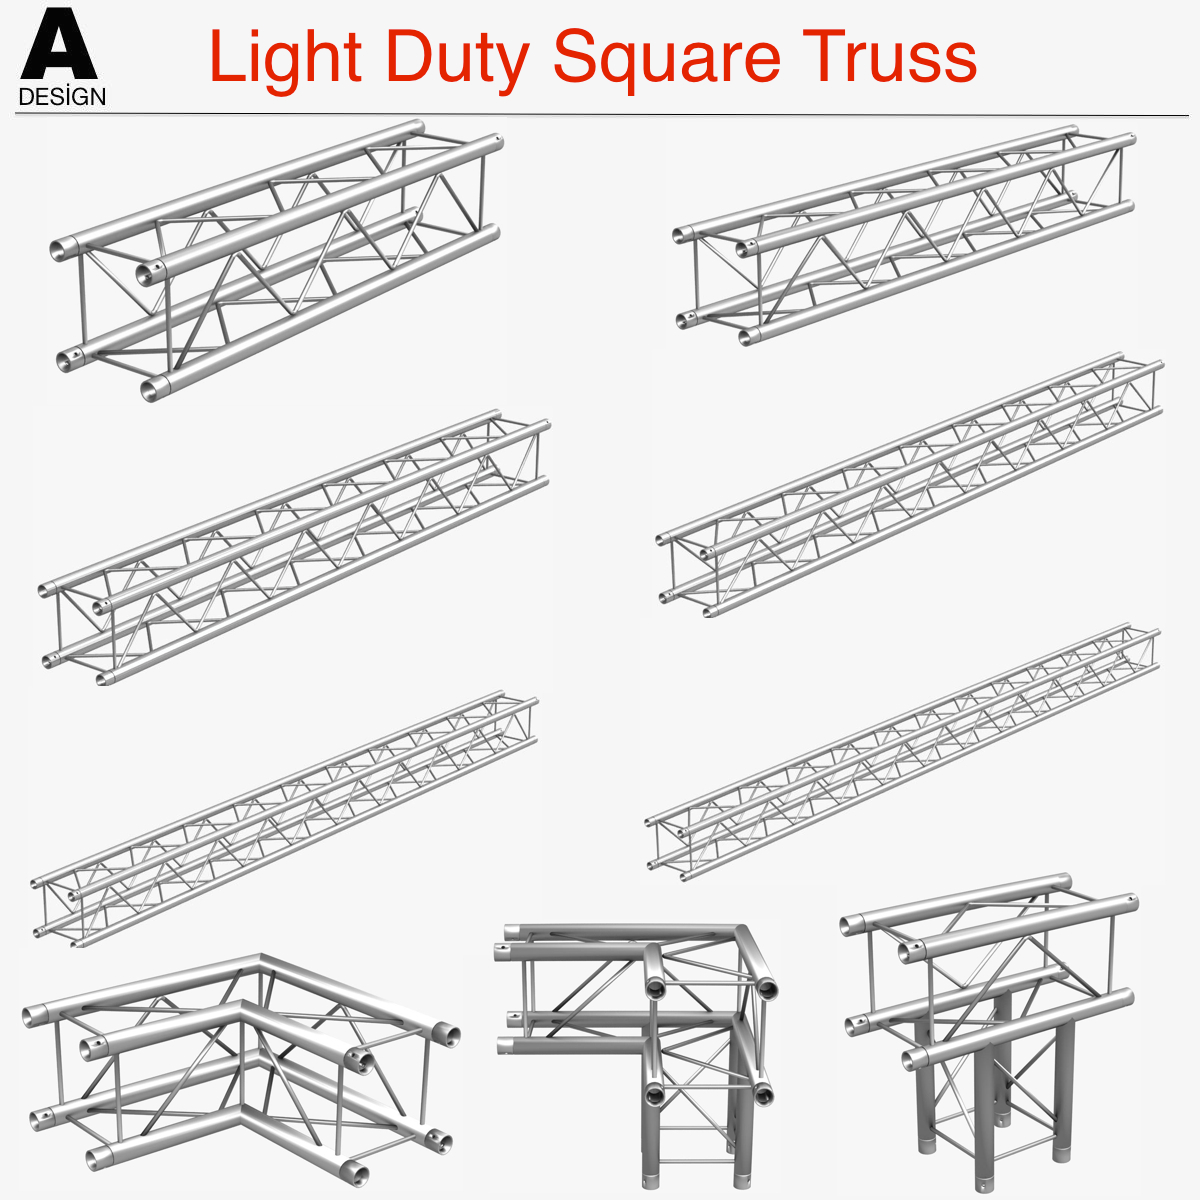 light duty square truss (kolekcija 9 modularna) 3d model 3ds max dxf fbx c4d dae texture wrl wrz obj drugo 268514